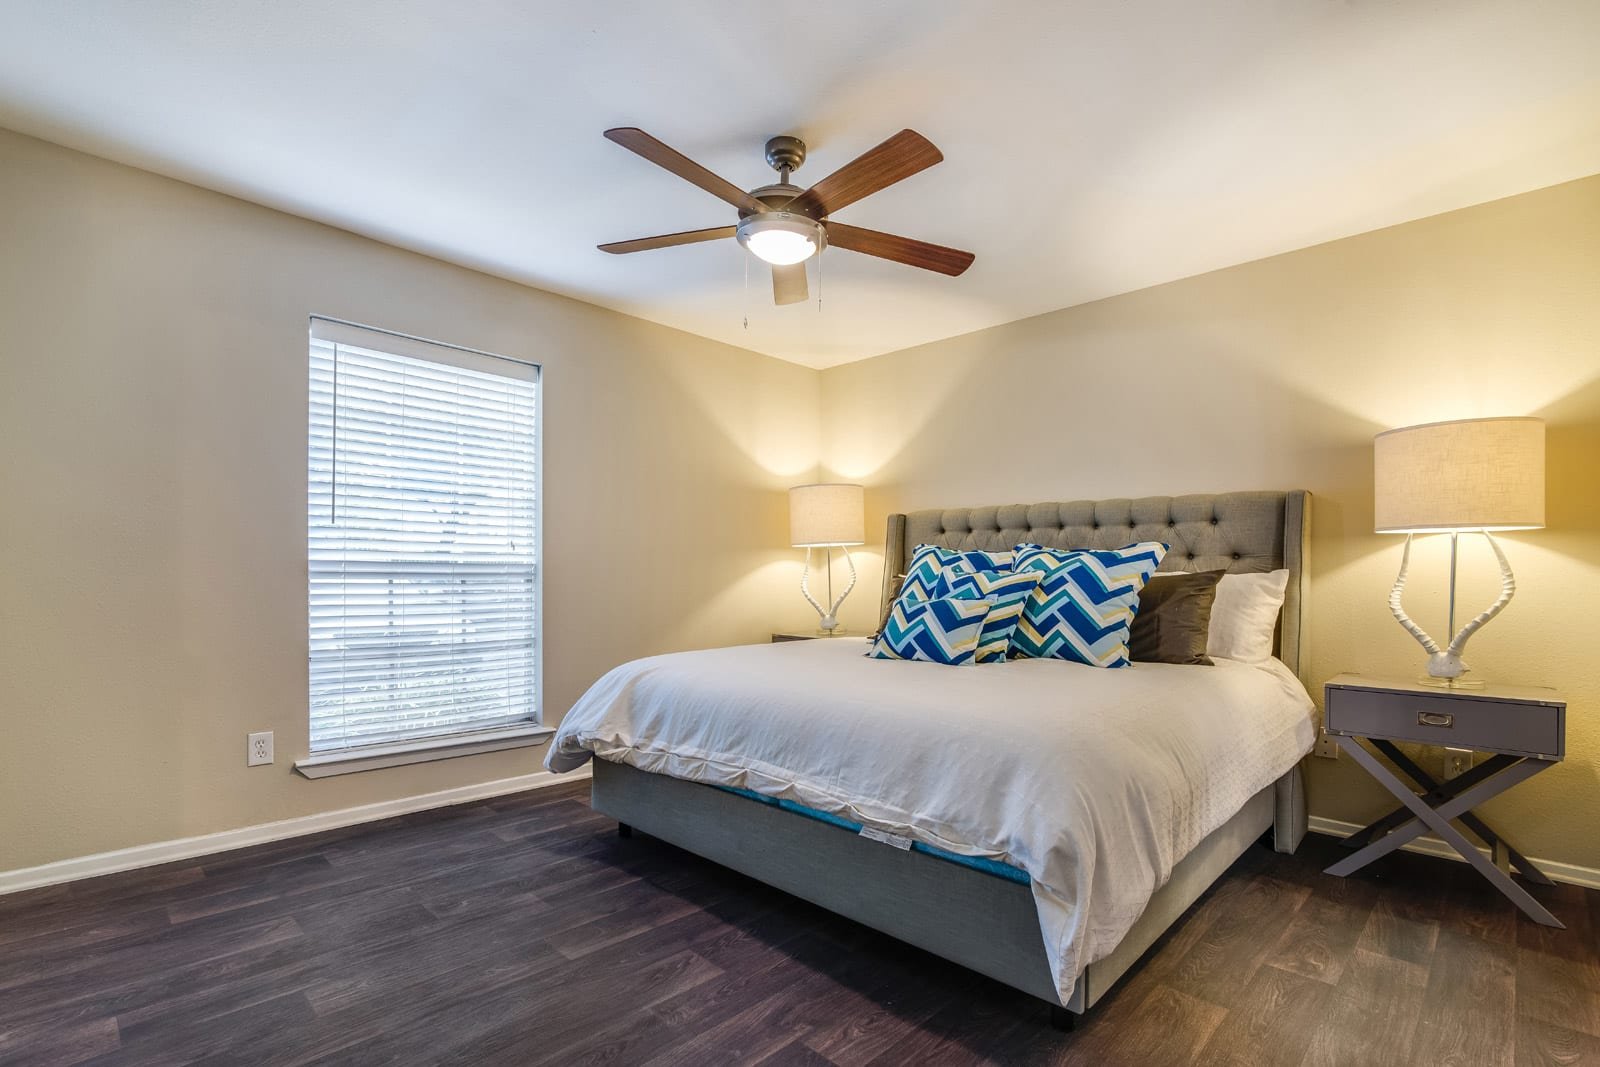 Contemporary Fans Throughout at Allen House Apartments, Houston, TX